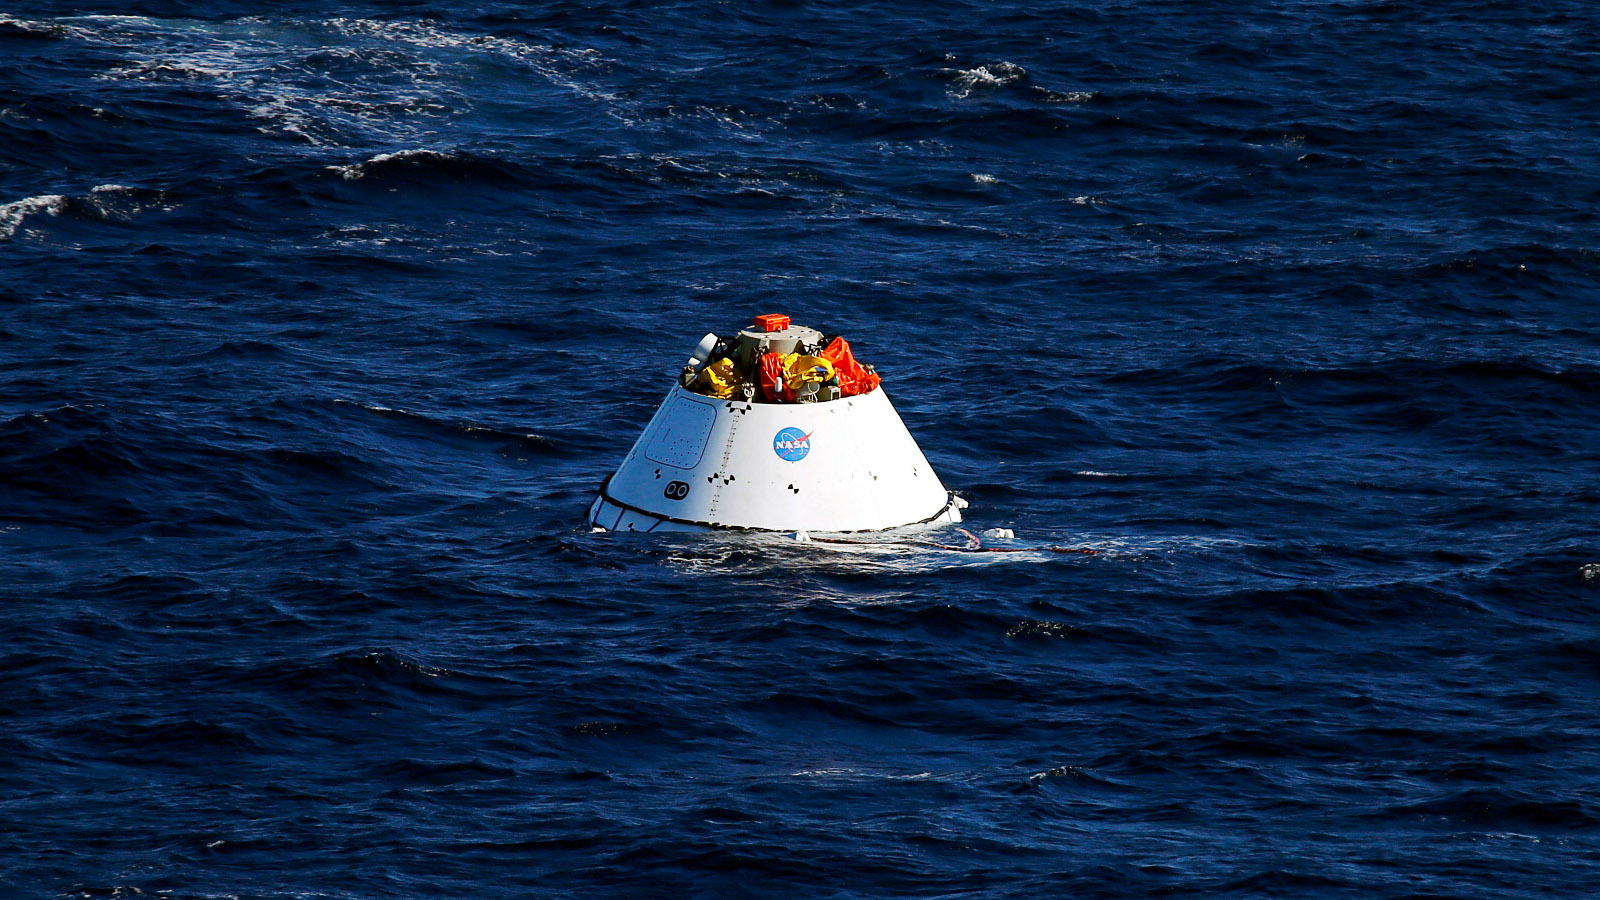 A test version of NASA's Orion capsule floats in the ocean during a recovery drill off the coast of California September 15, 2014. Orion is NASA's next exploration spacecraft, designed to carry astronauts to destinations in deep space, including an asteroid and Mars. Picture taken September 15, 2014.